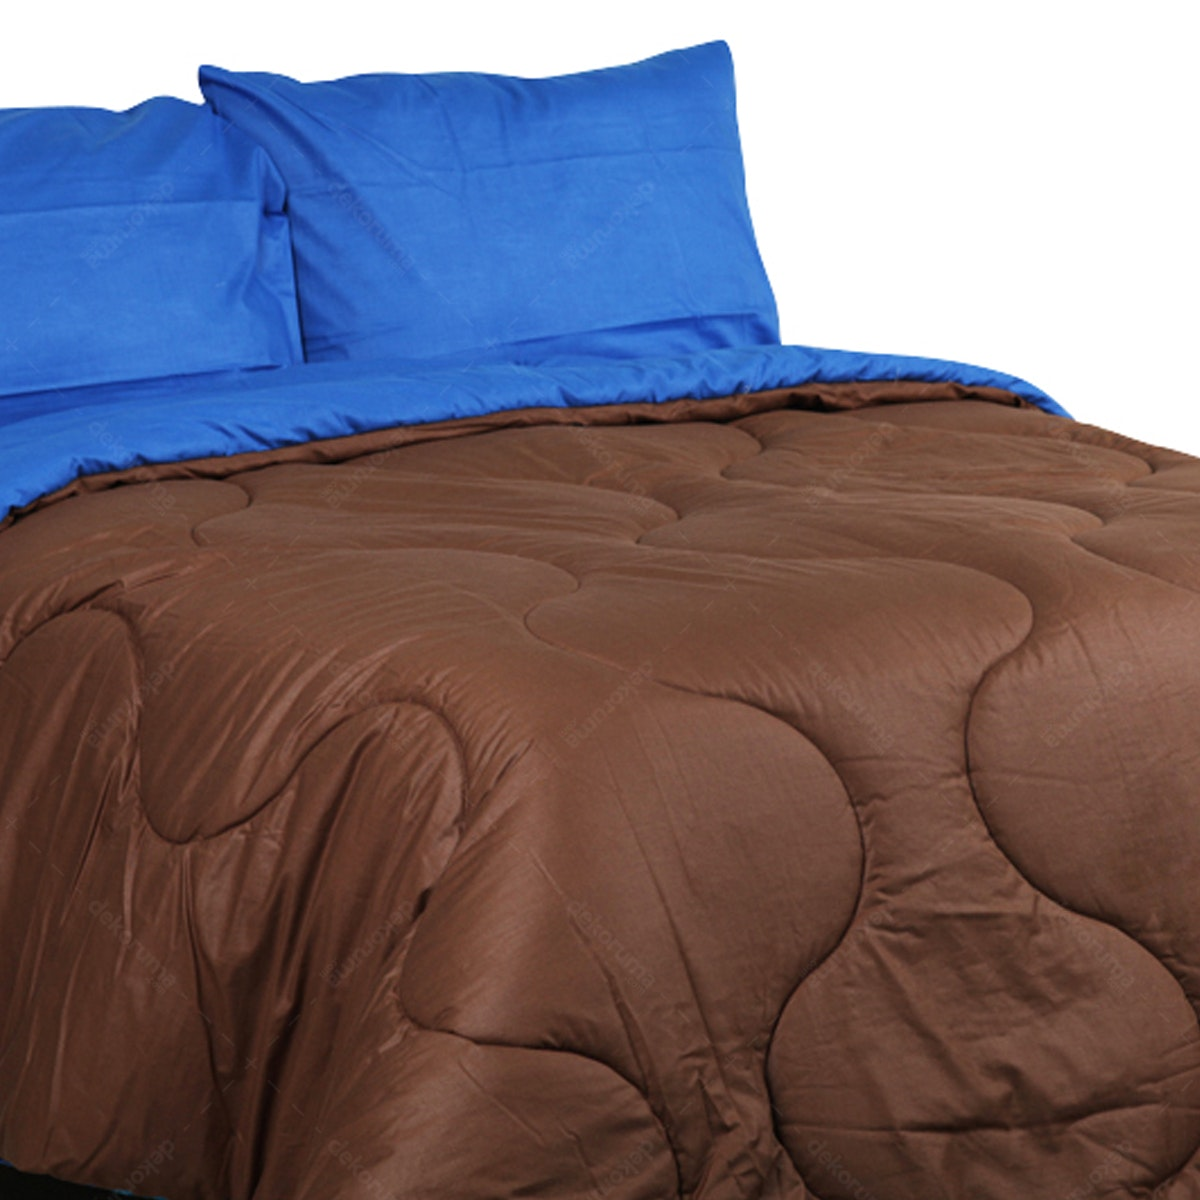 Sierra Sprei Polos Coffee Mix Dark Biru 160x200